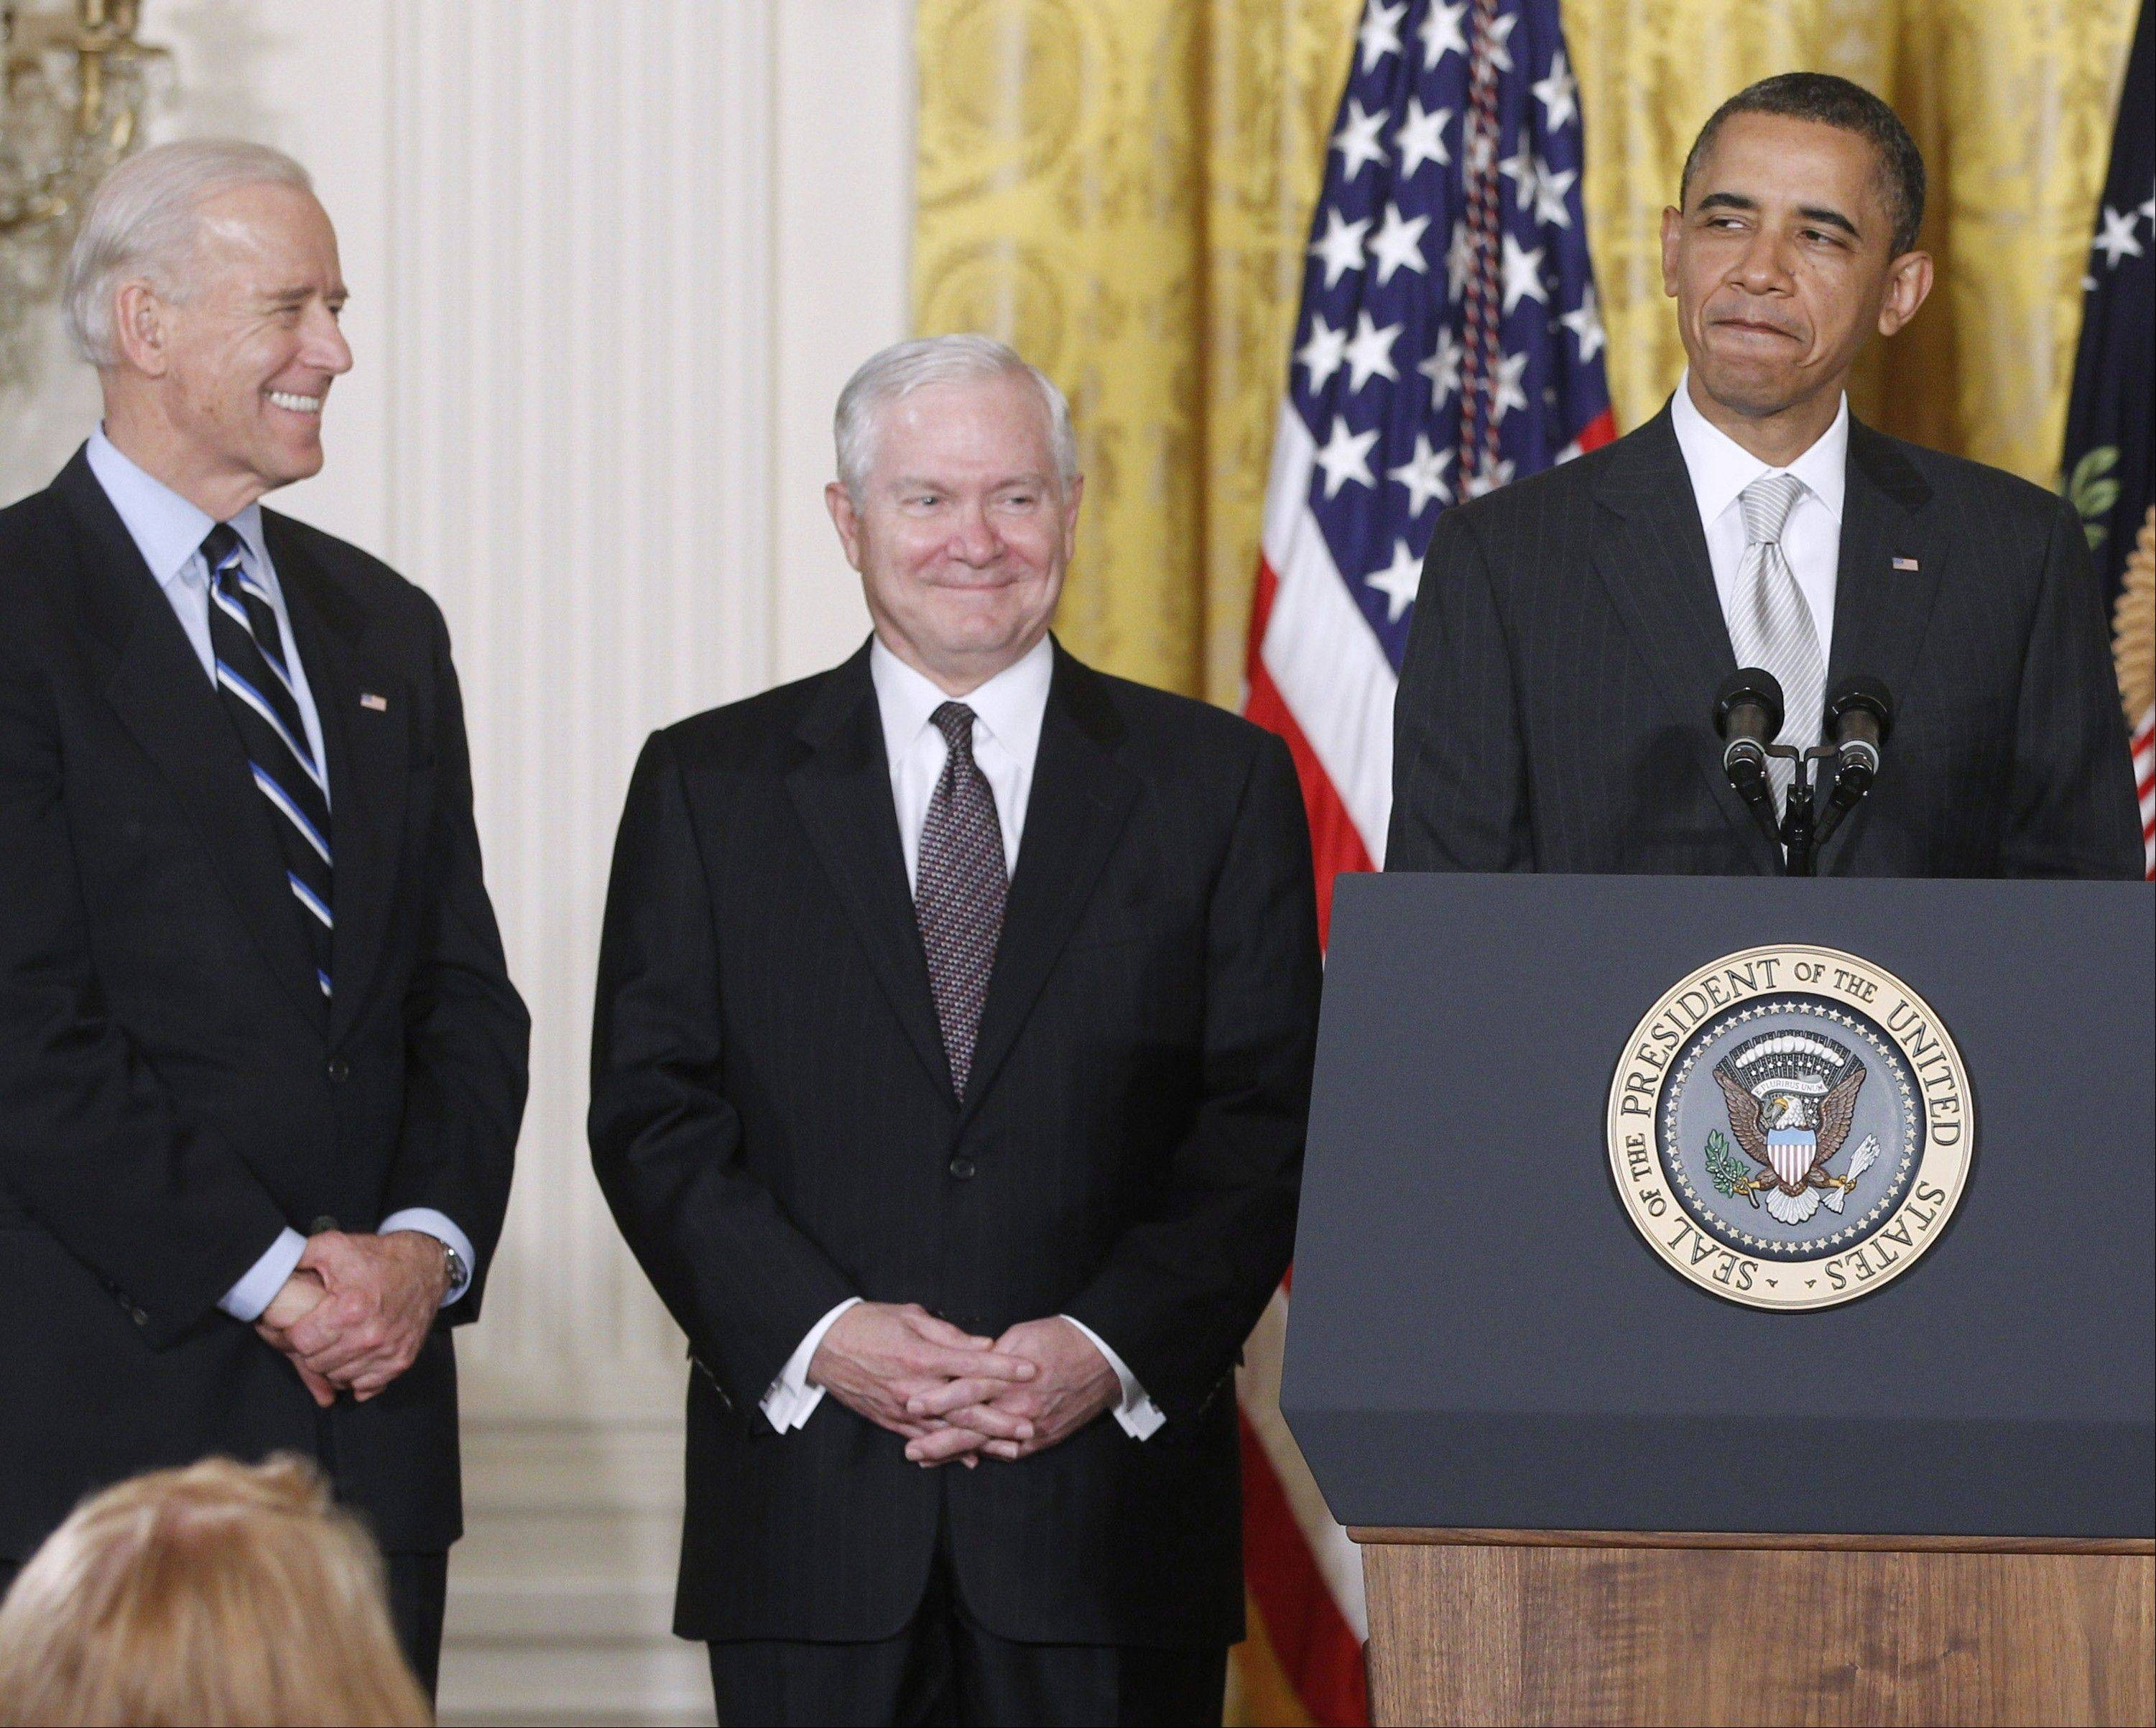 President Barack Obama stands in the East Room of the White House in Washington with, from left: Vice President Joe Biden and outgoing Defense Secretary Robert Gates. The White House is bristling over former Defense Secretary Robert Gates' new memoir accusing President Barack Obama of showing too little enthusiasm for the U.S. war mission in Afghanistan and sharply criticizing Vice President Joe Biden's foreign policy instincts.